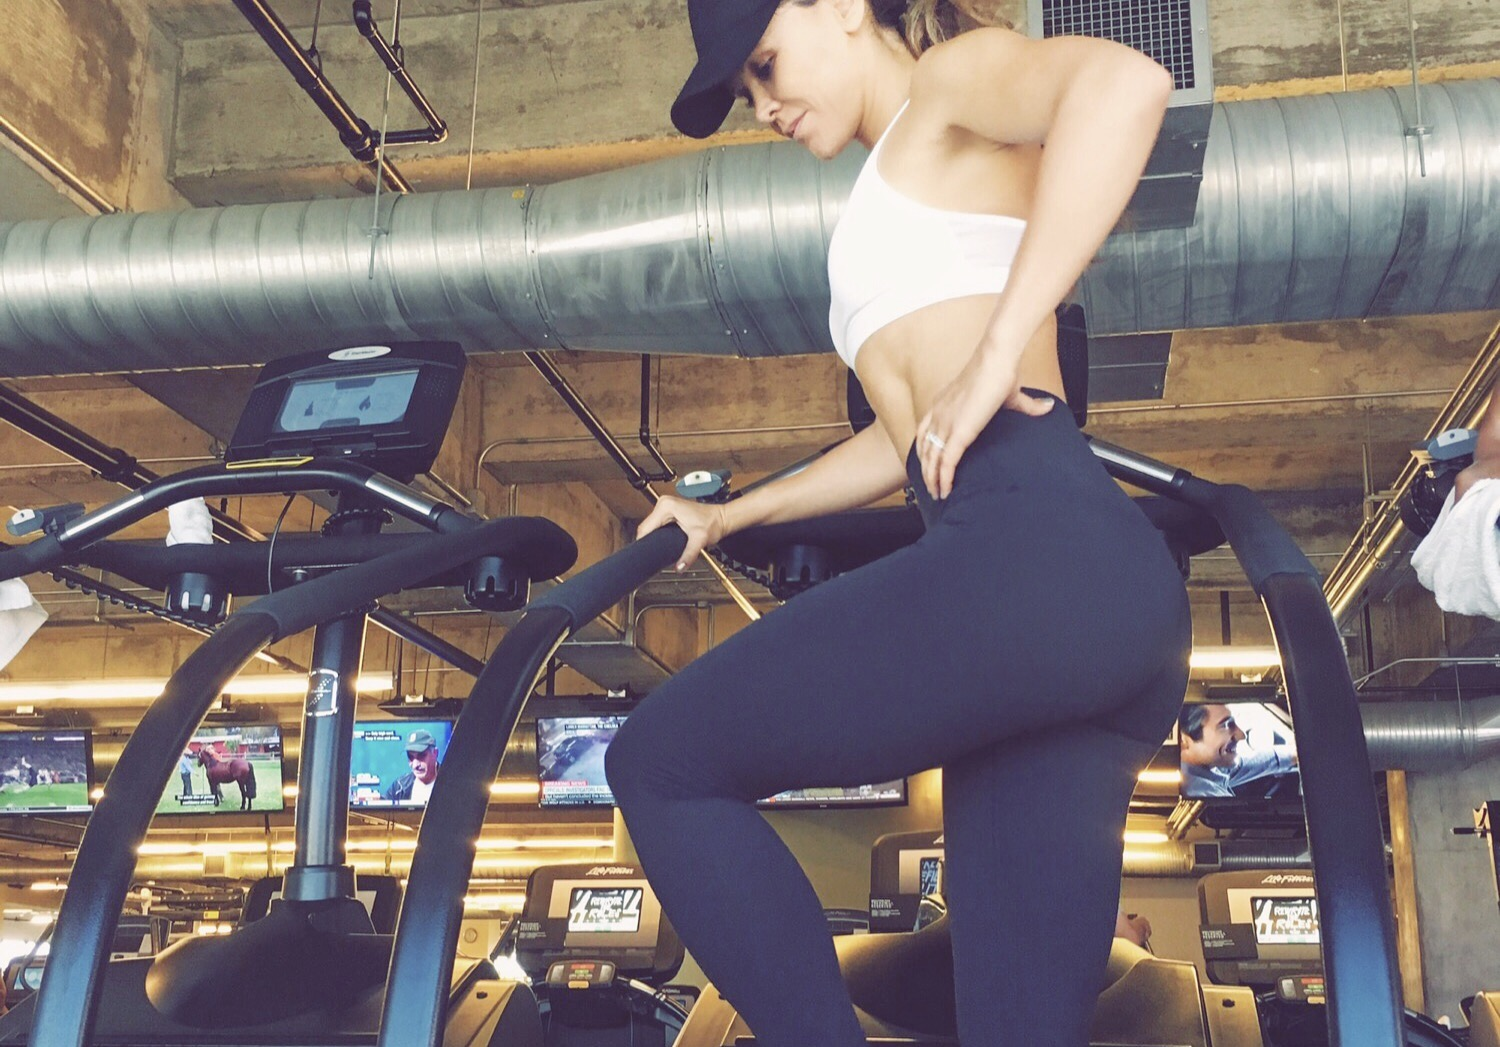 tone-it-up-stairmill-cardio-workout